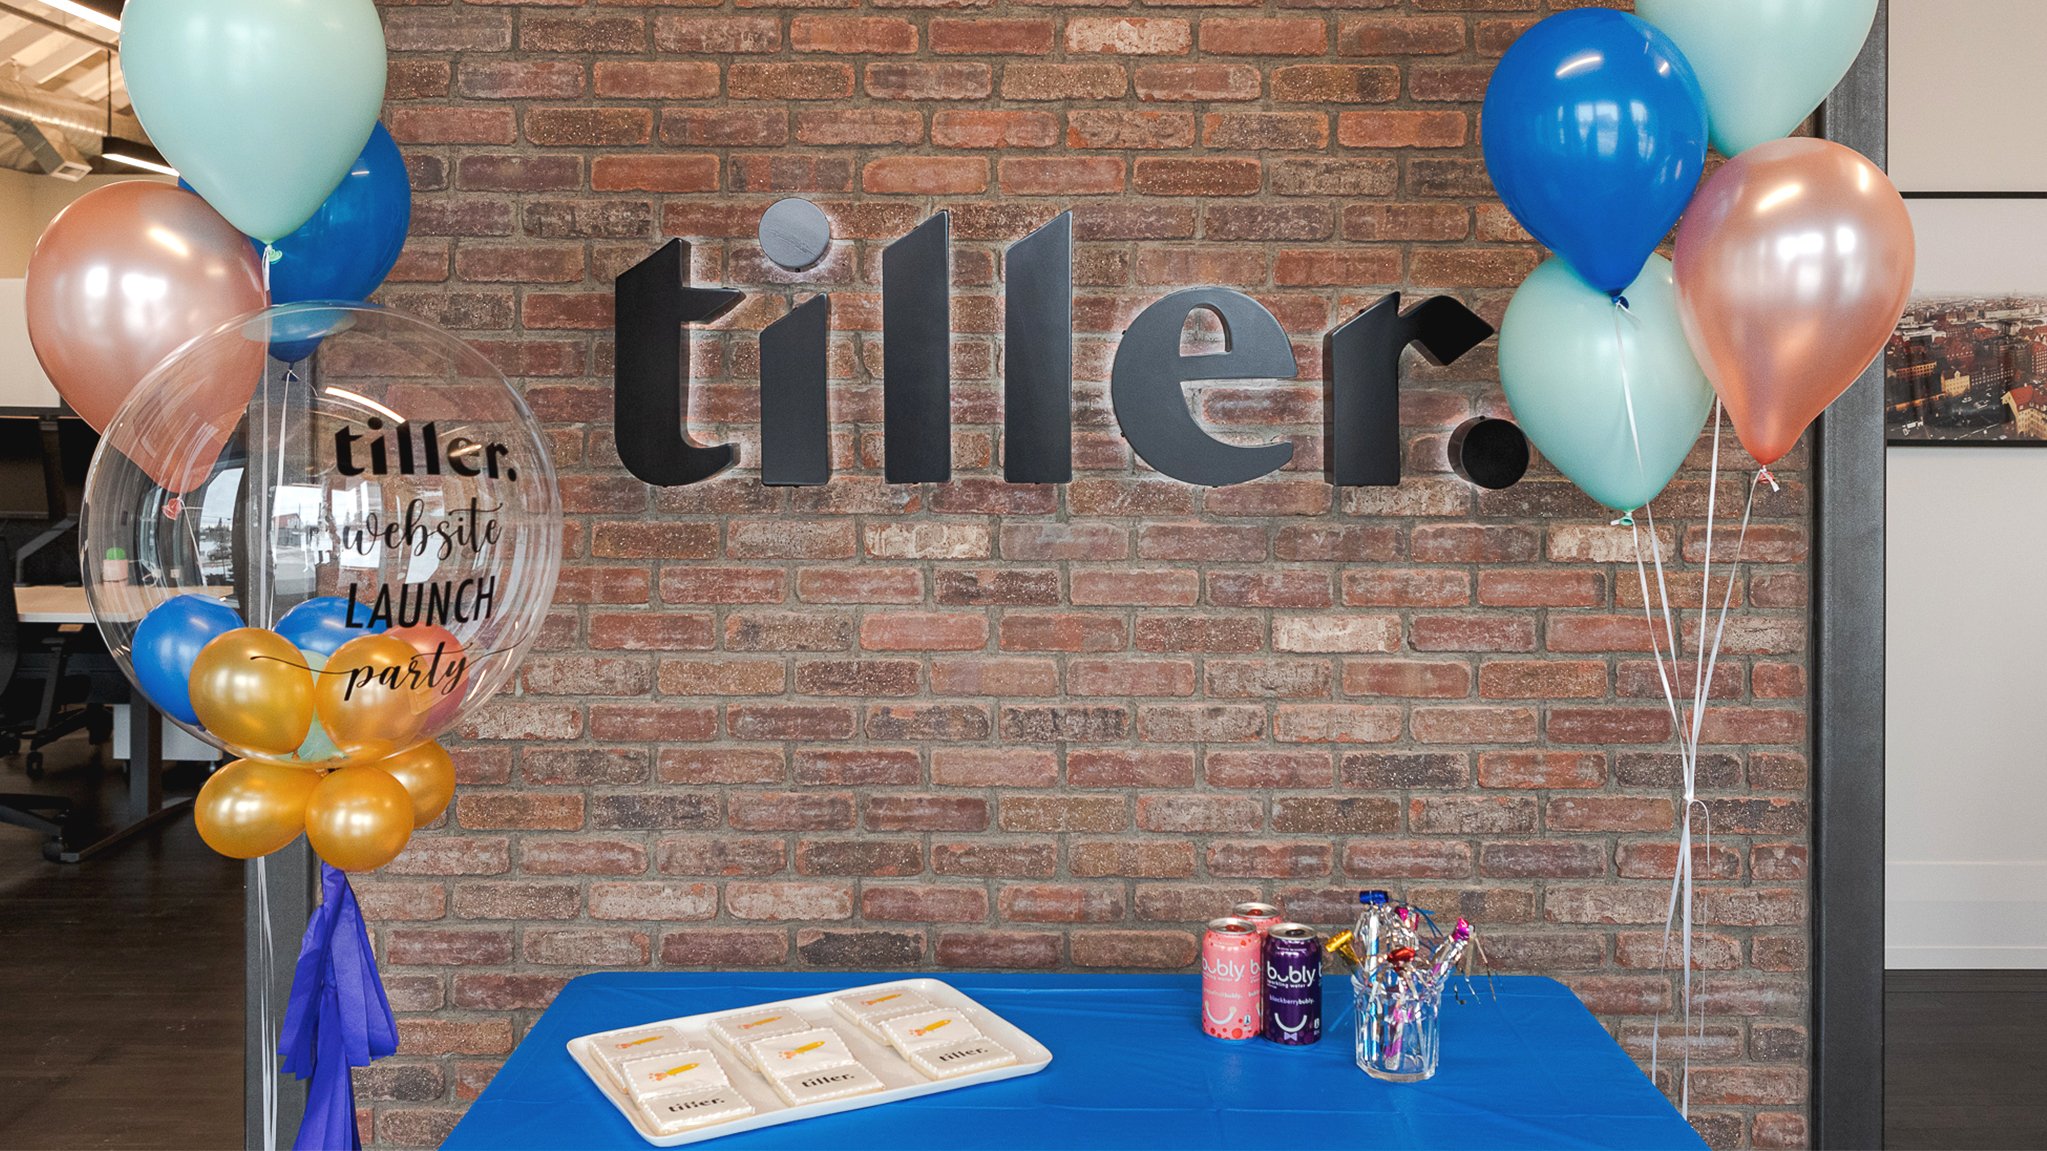 Picture of the Tiller website launch party with custom balloons and cookies.